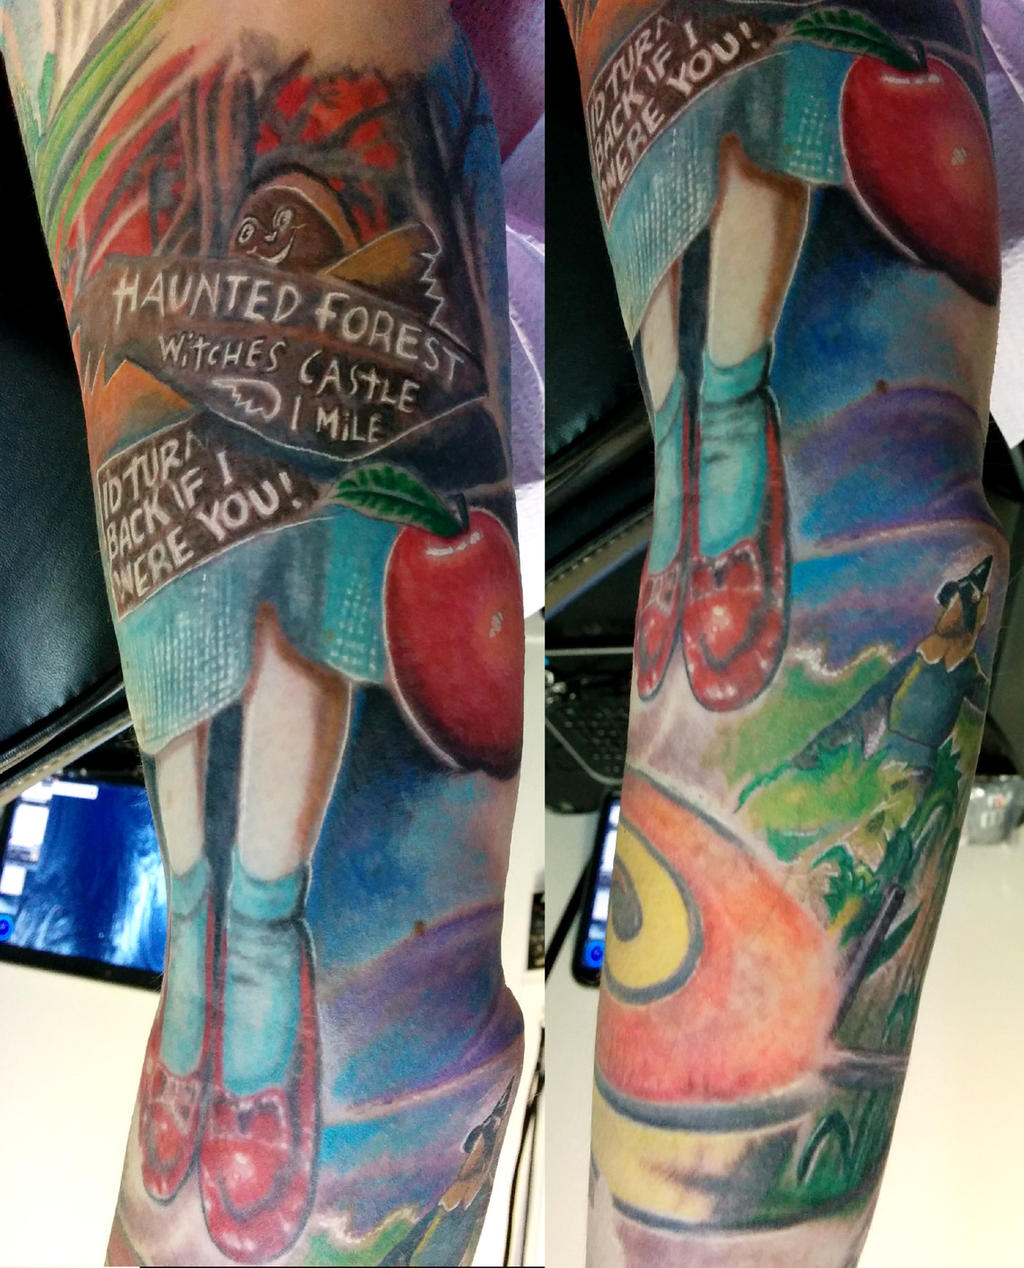 Wizard of Oz sleeve, inner arm work by catbones